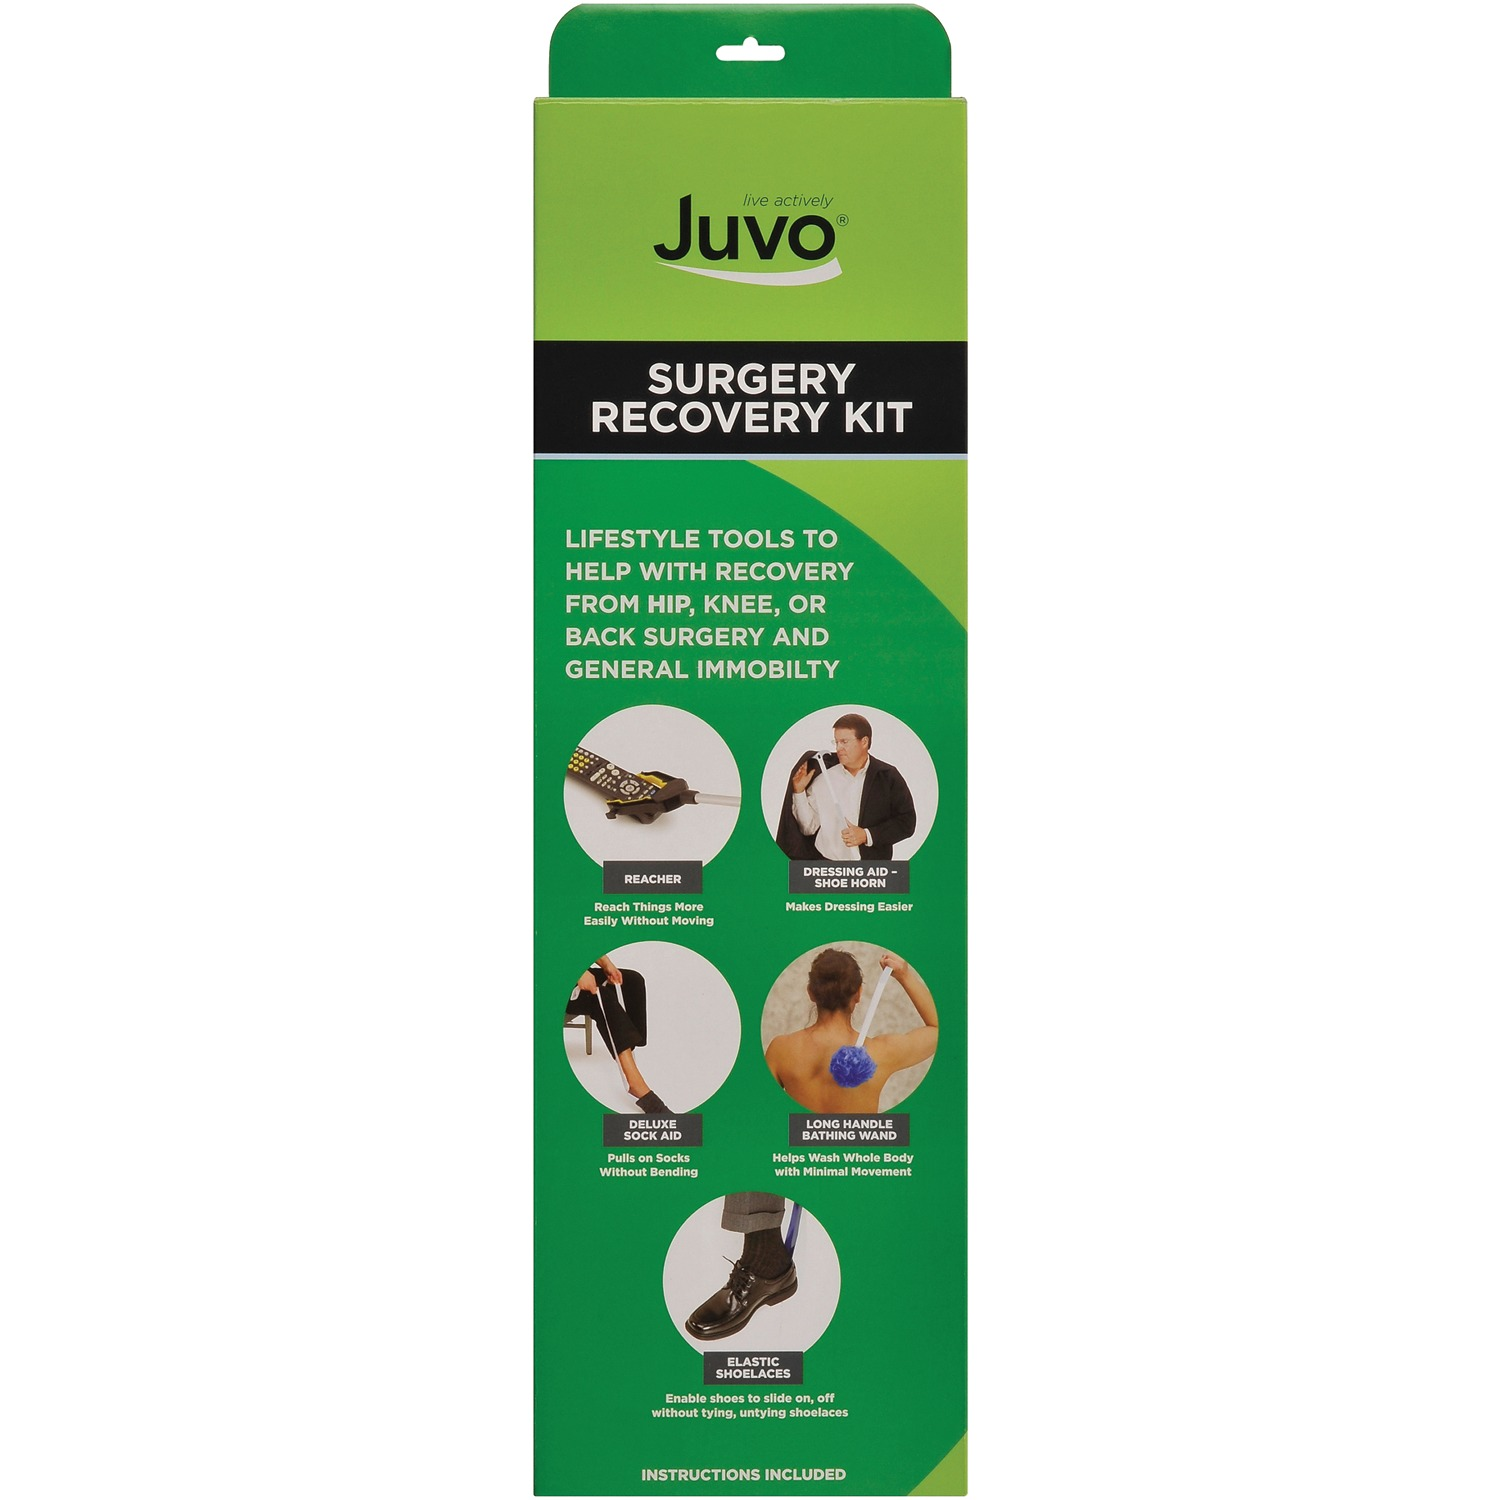 Juvo Products RK101 Surgery Recovery Kit